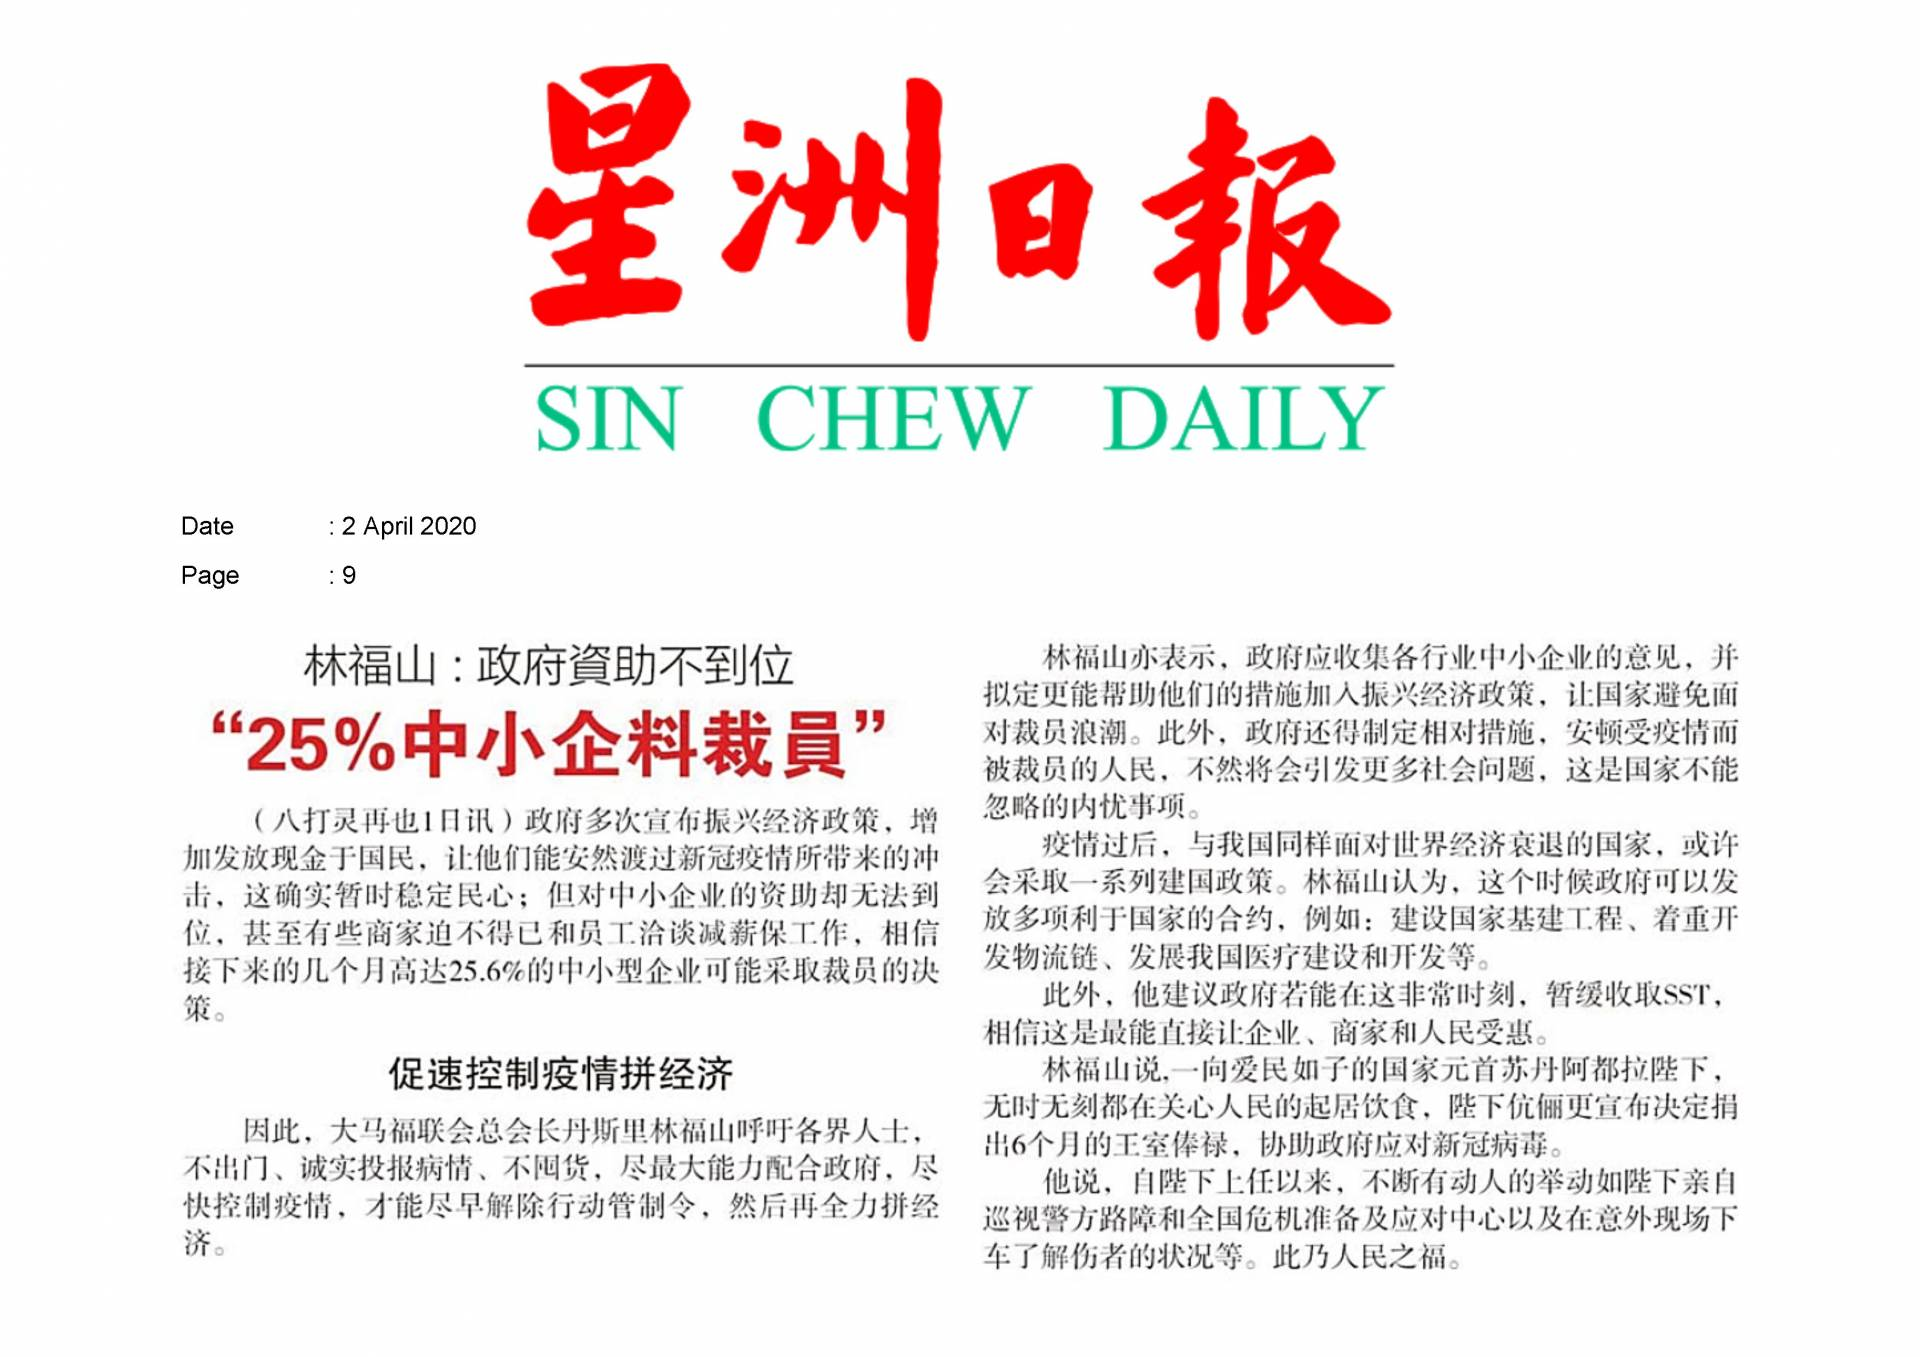 2020.04.02 Sin Chew - Lim Hock San said 25pct of SMEs expected to layoff